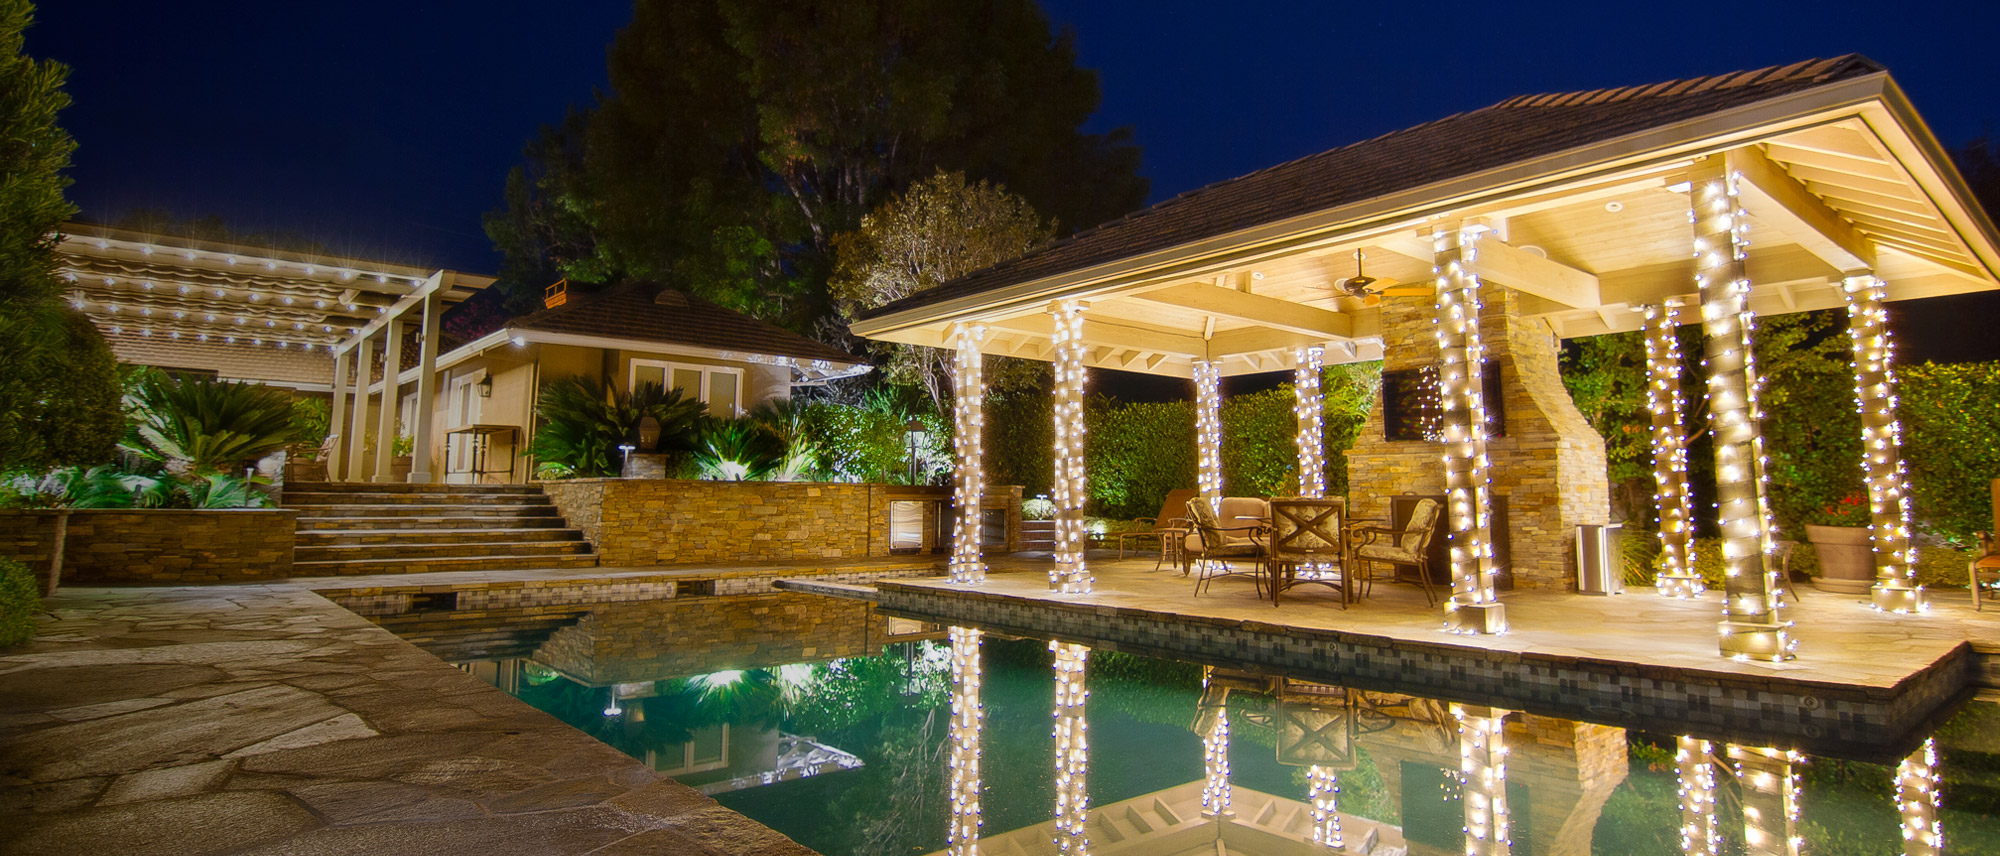 Landscape Lighting for Pools